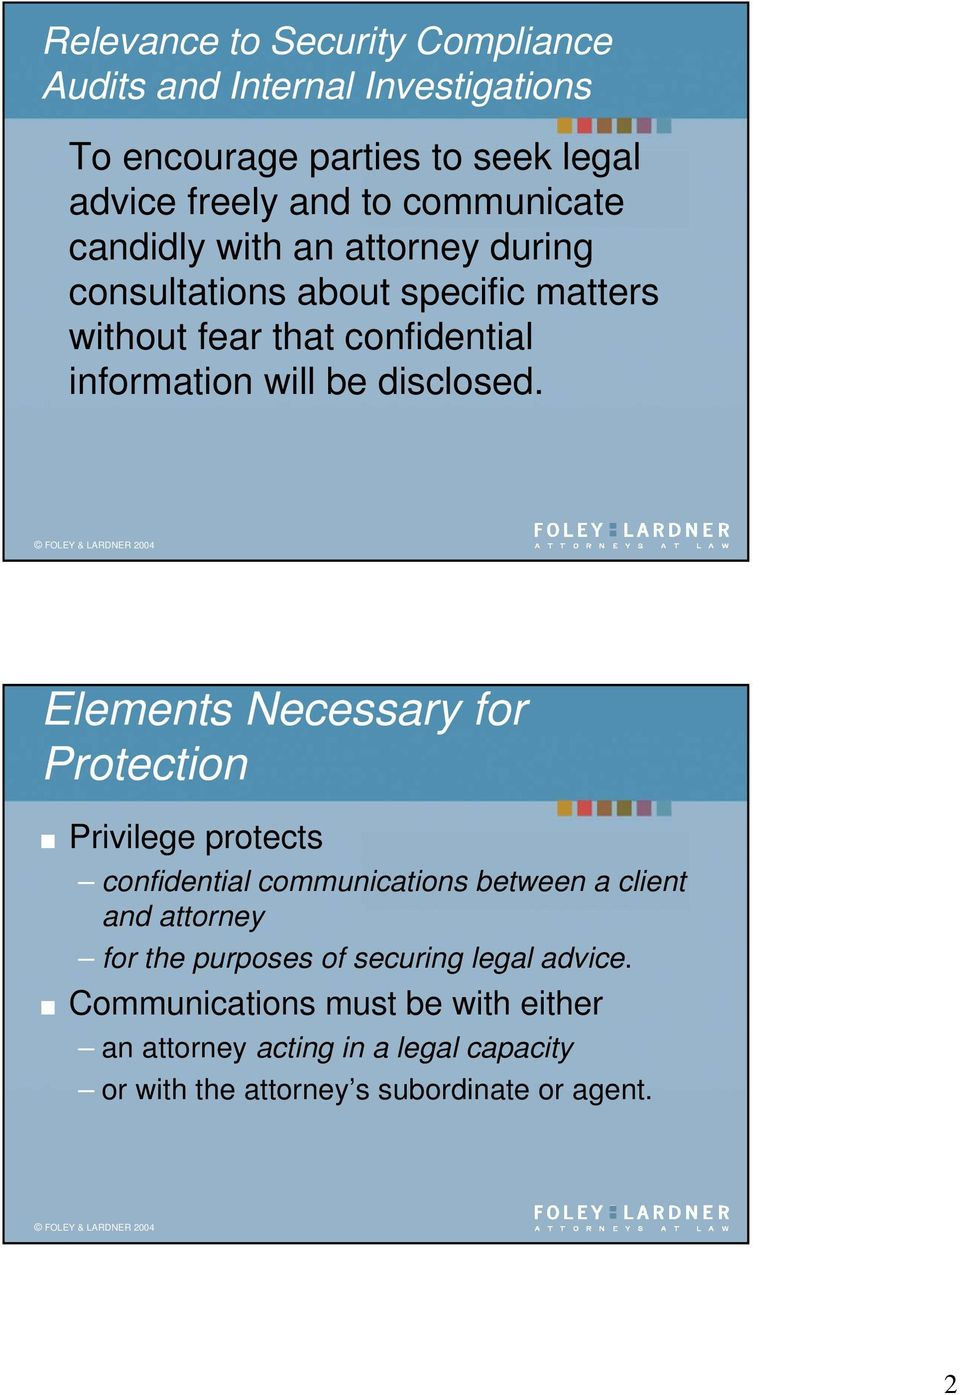 Elements Necessary for Protection Privilege protects confidential communications between a client and attorney for the purposes of